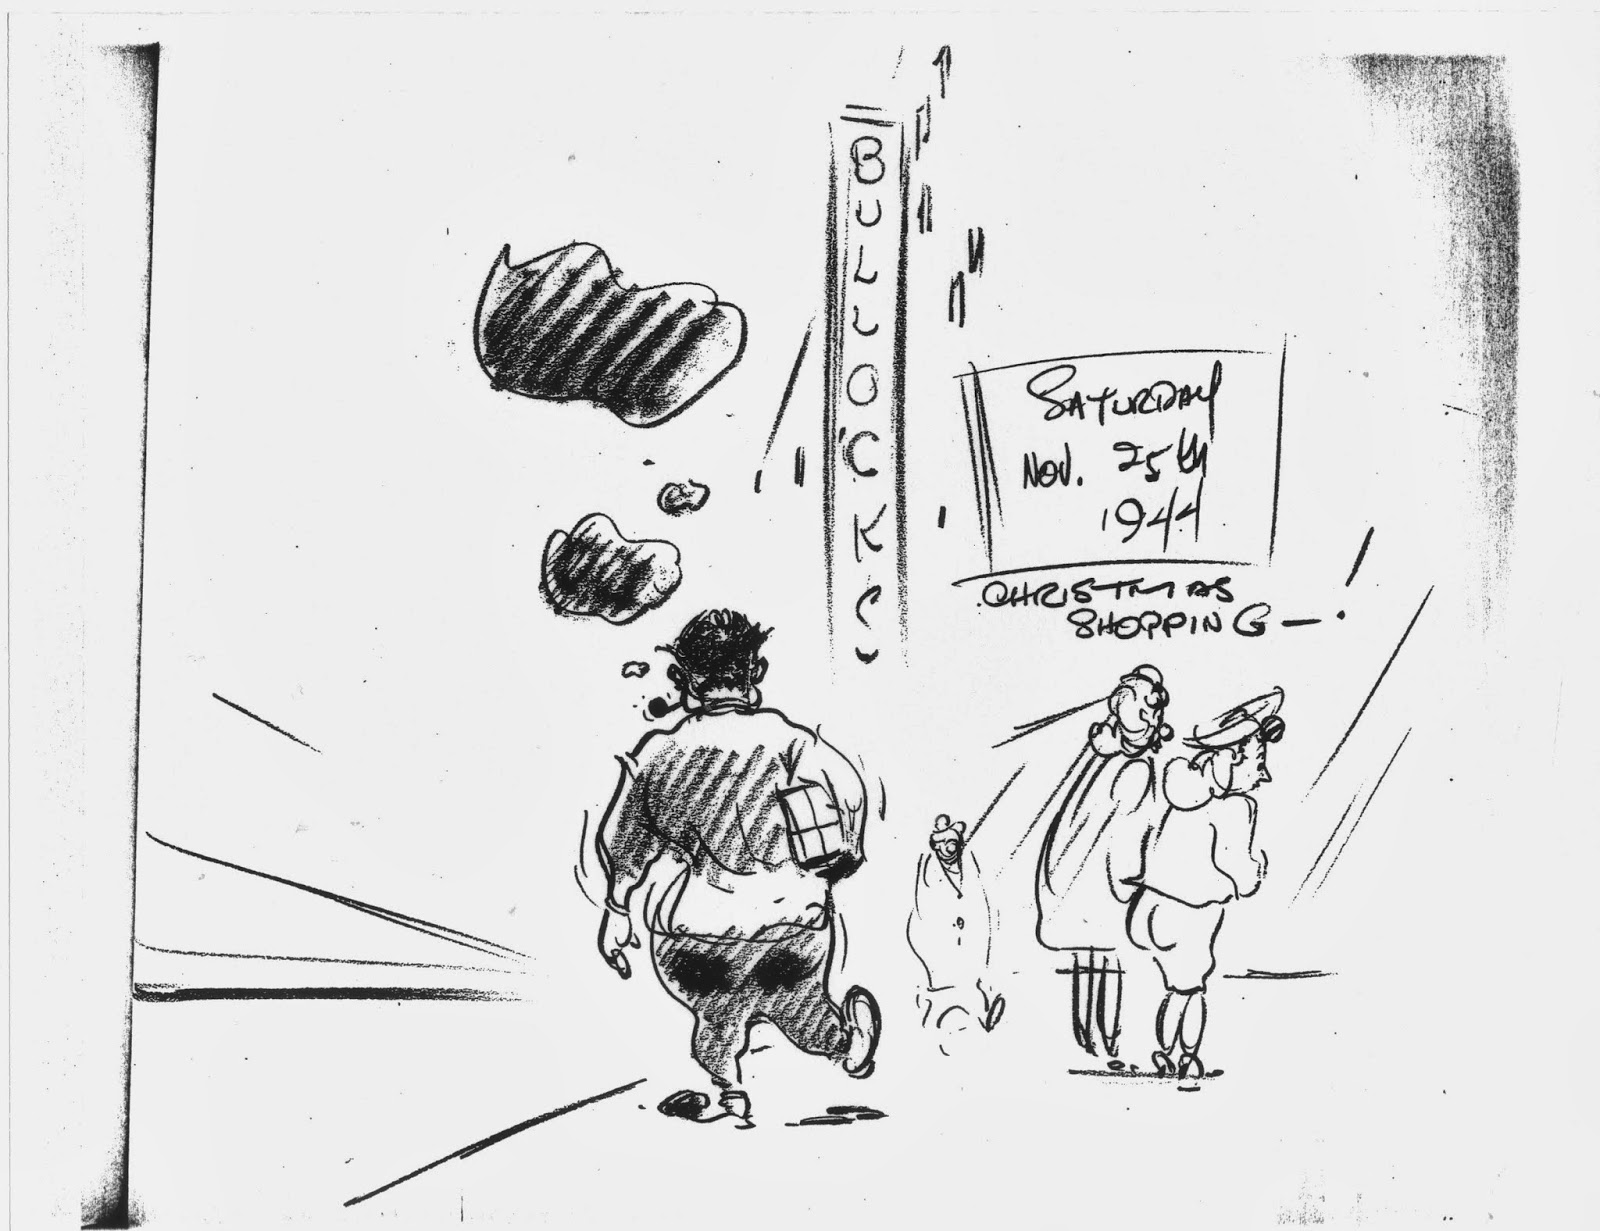 Filboid Studge: Irv Spence's Cartoon Diary: November 25, 1944